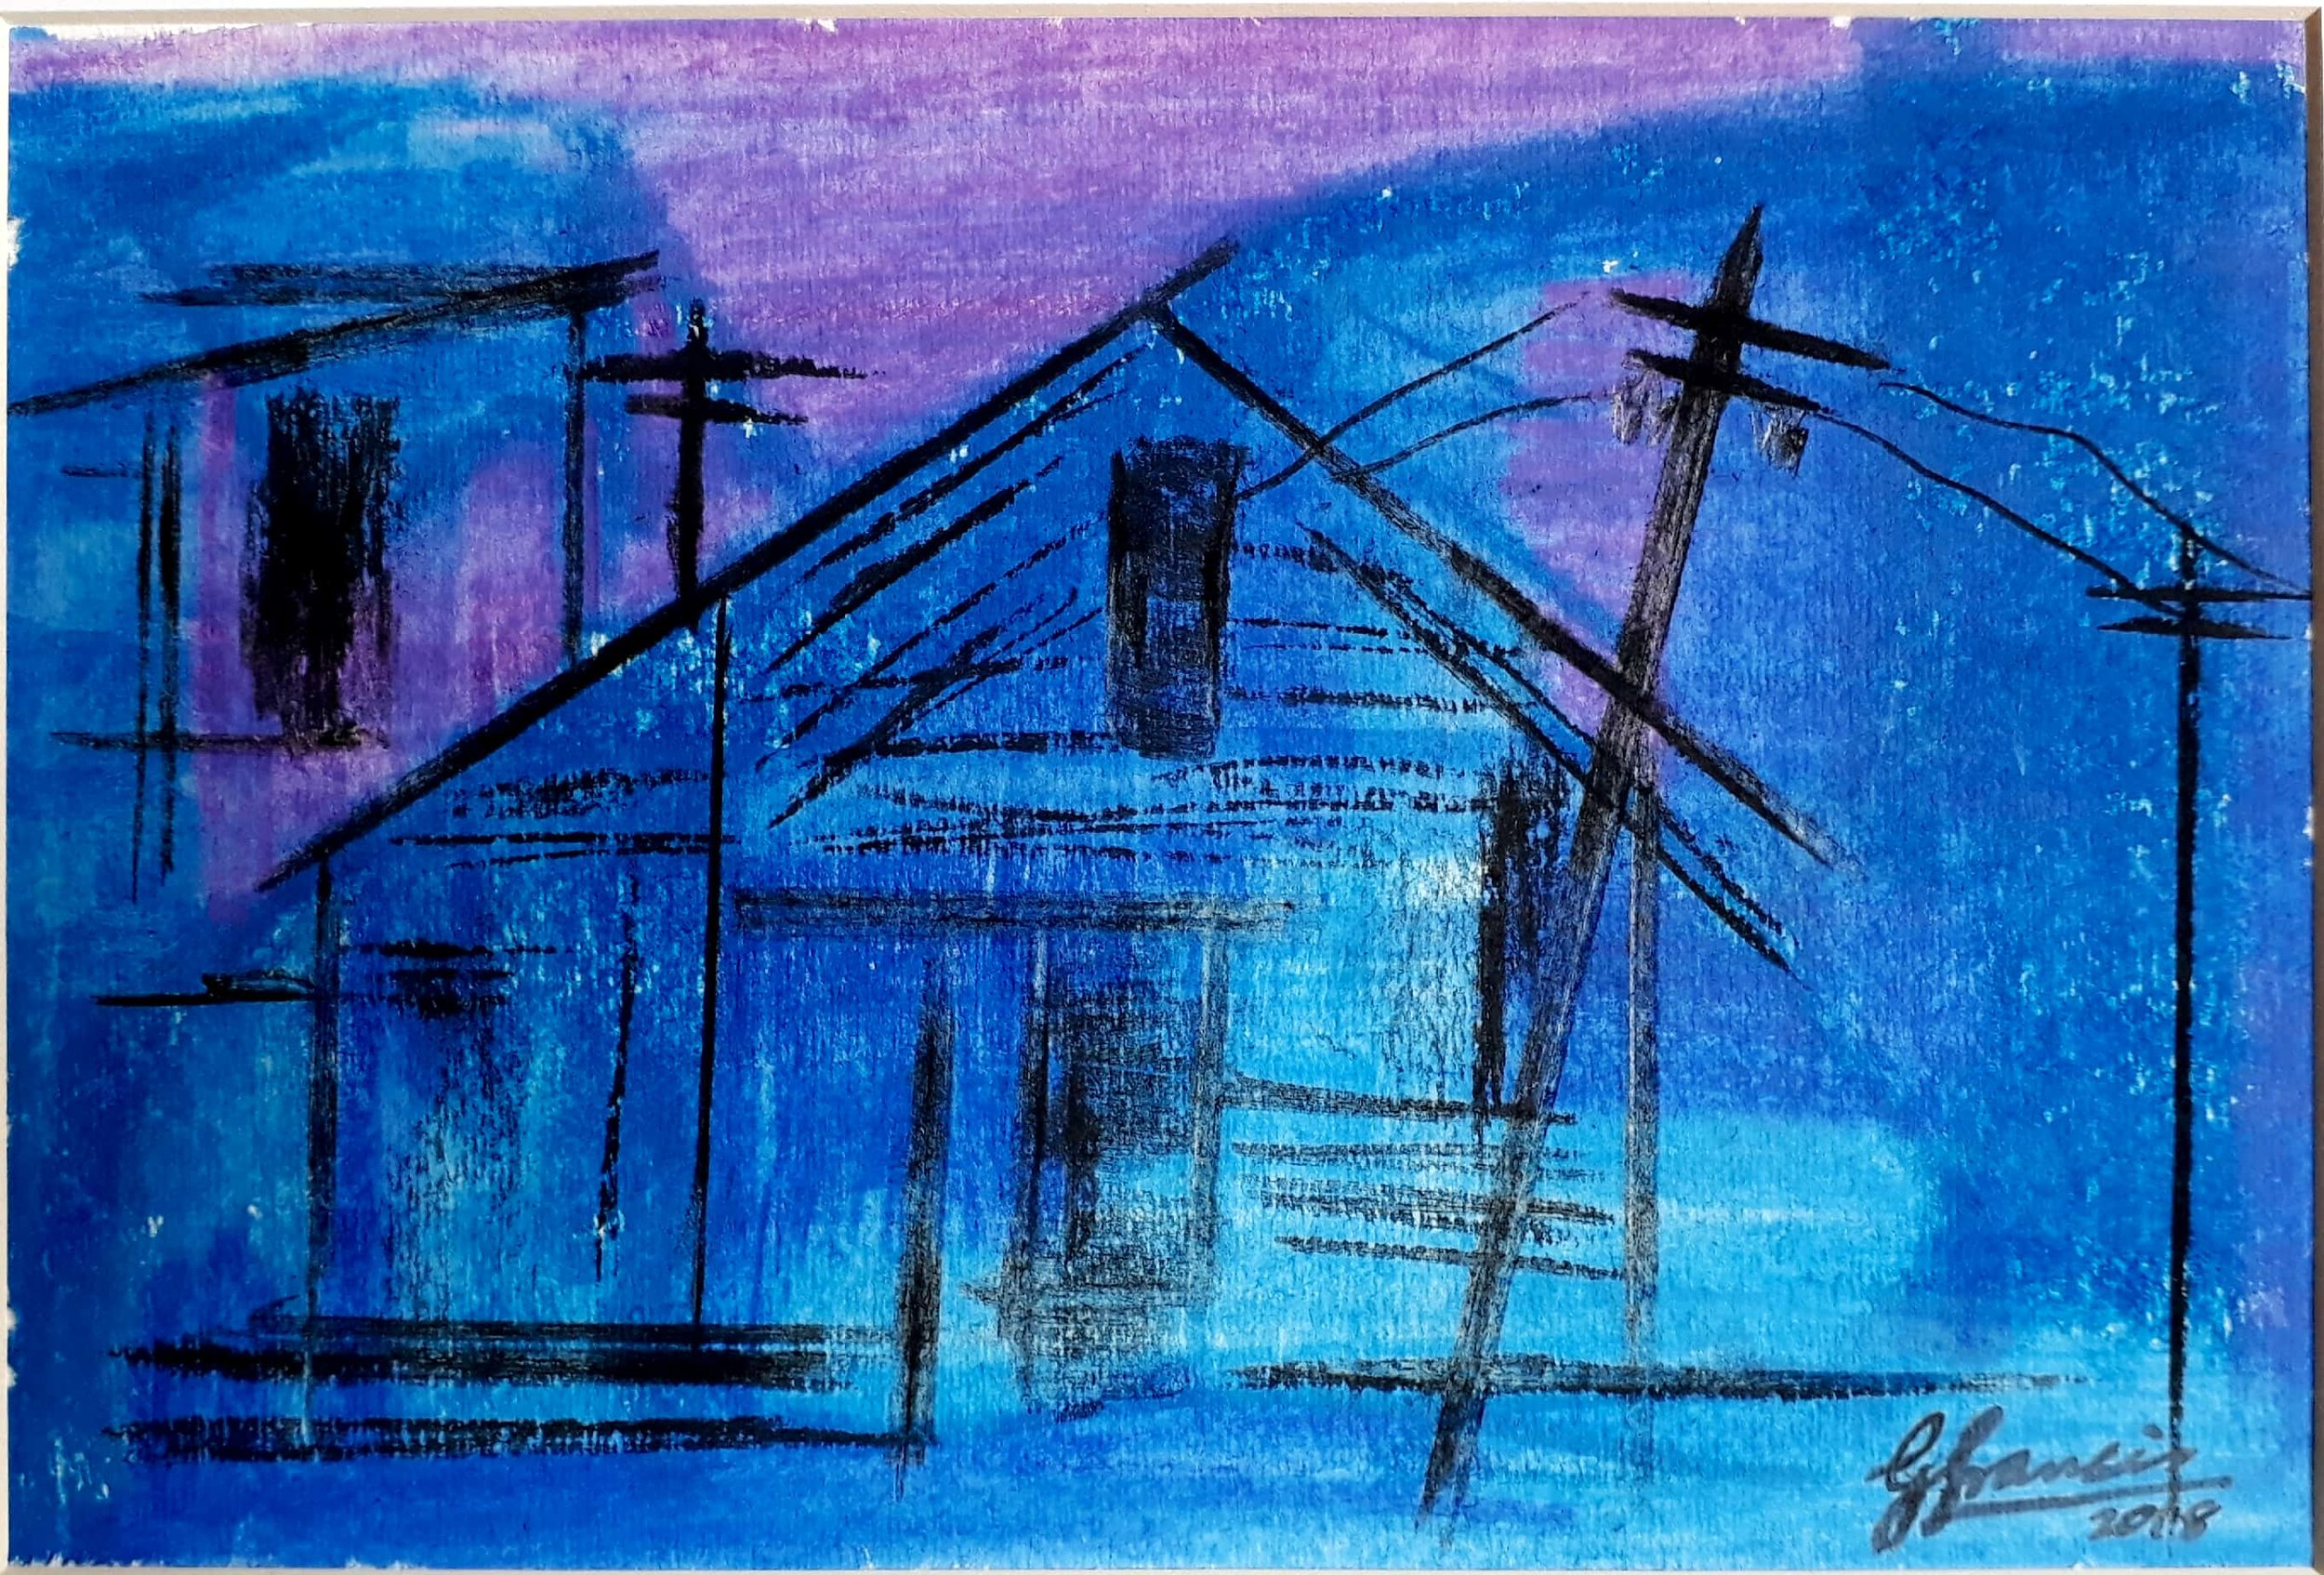 Blue Abstract Building